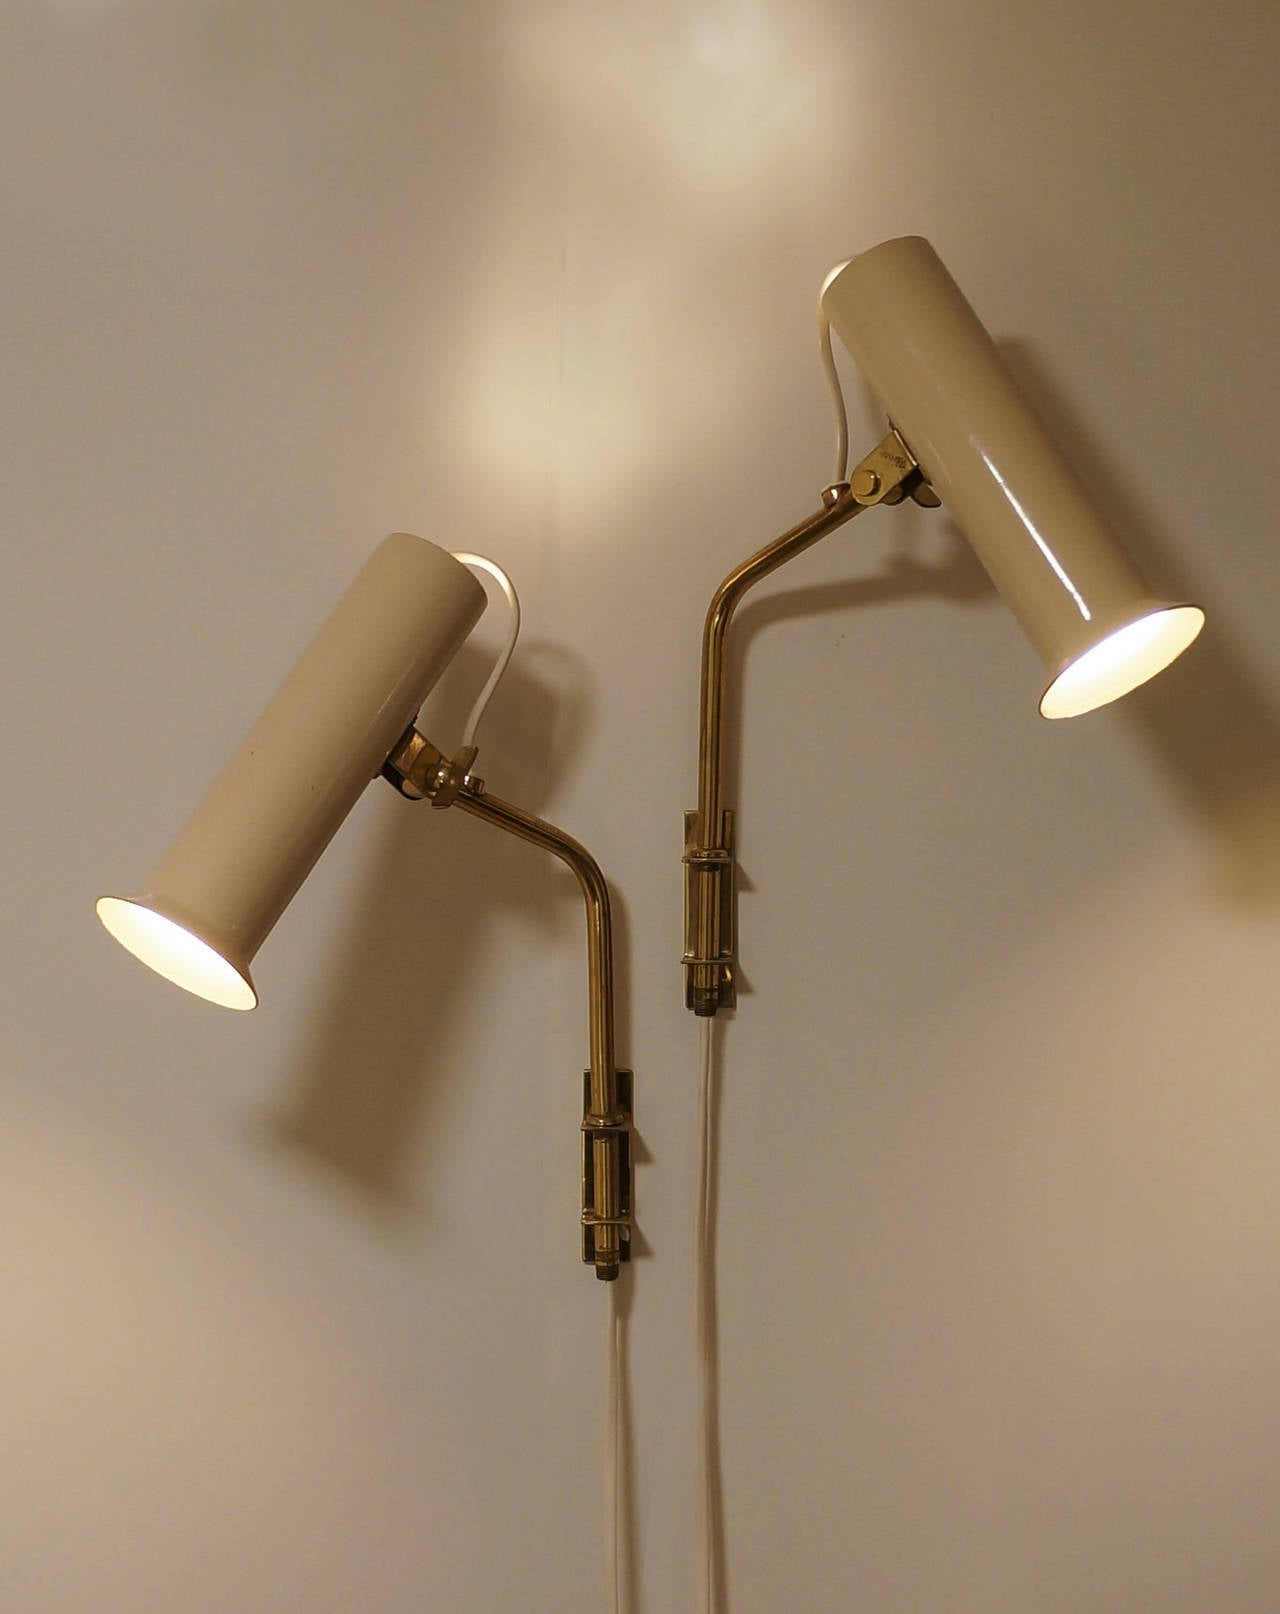 Painted Tapio Wirkkala Adjustable Reading Lamps or Sconces, 1950s For Sale